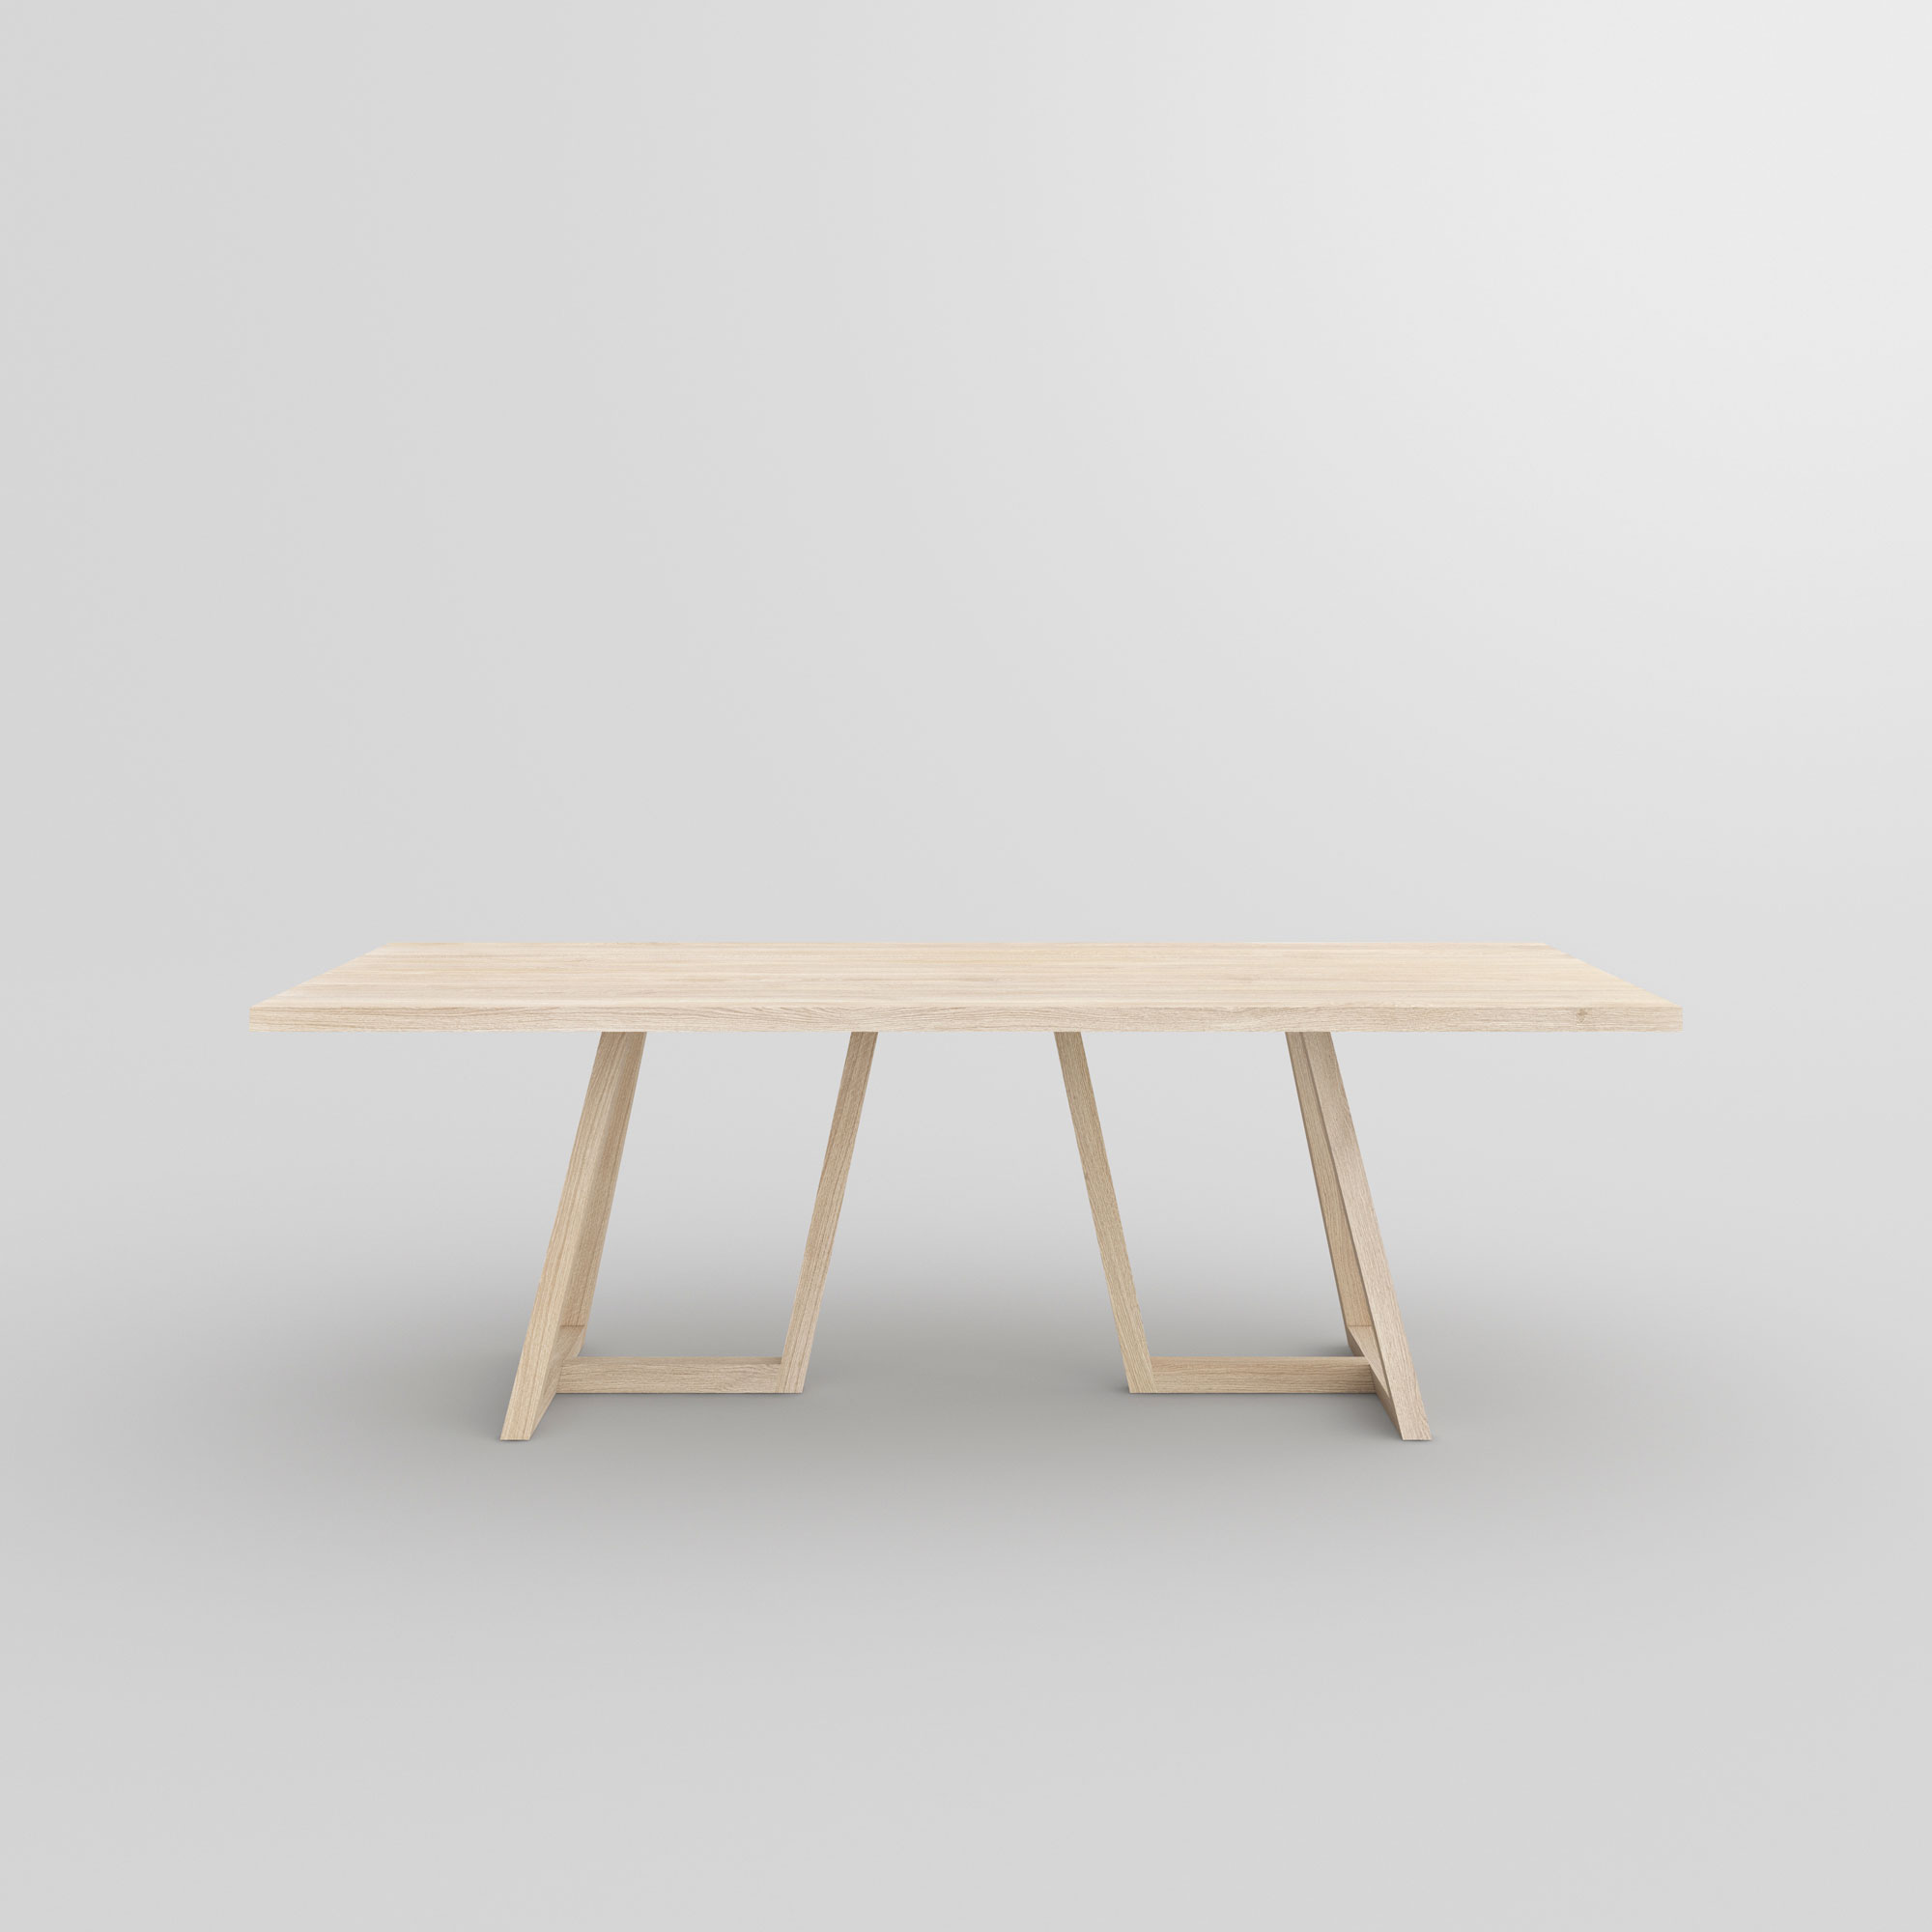 Designer Solid Wood Table MARGO custom made in solid wood by vitamin design